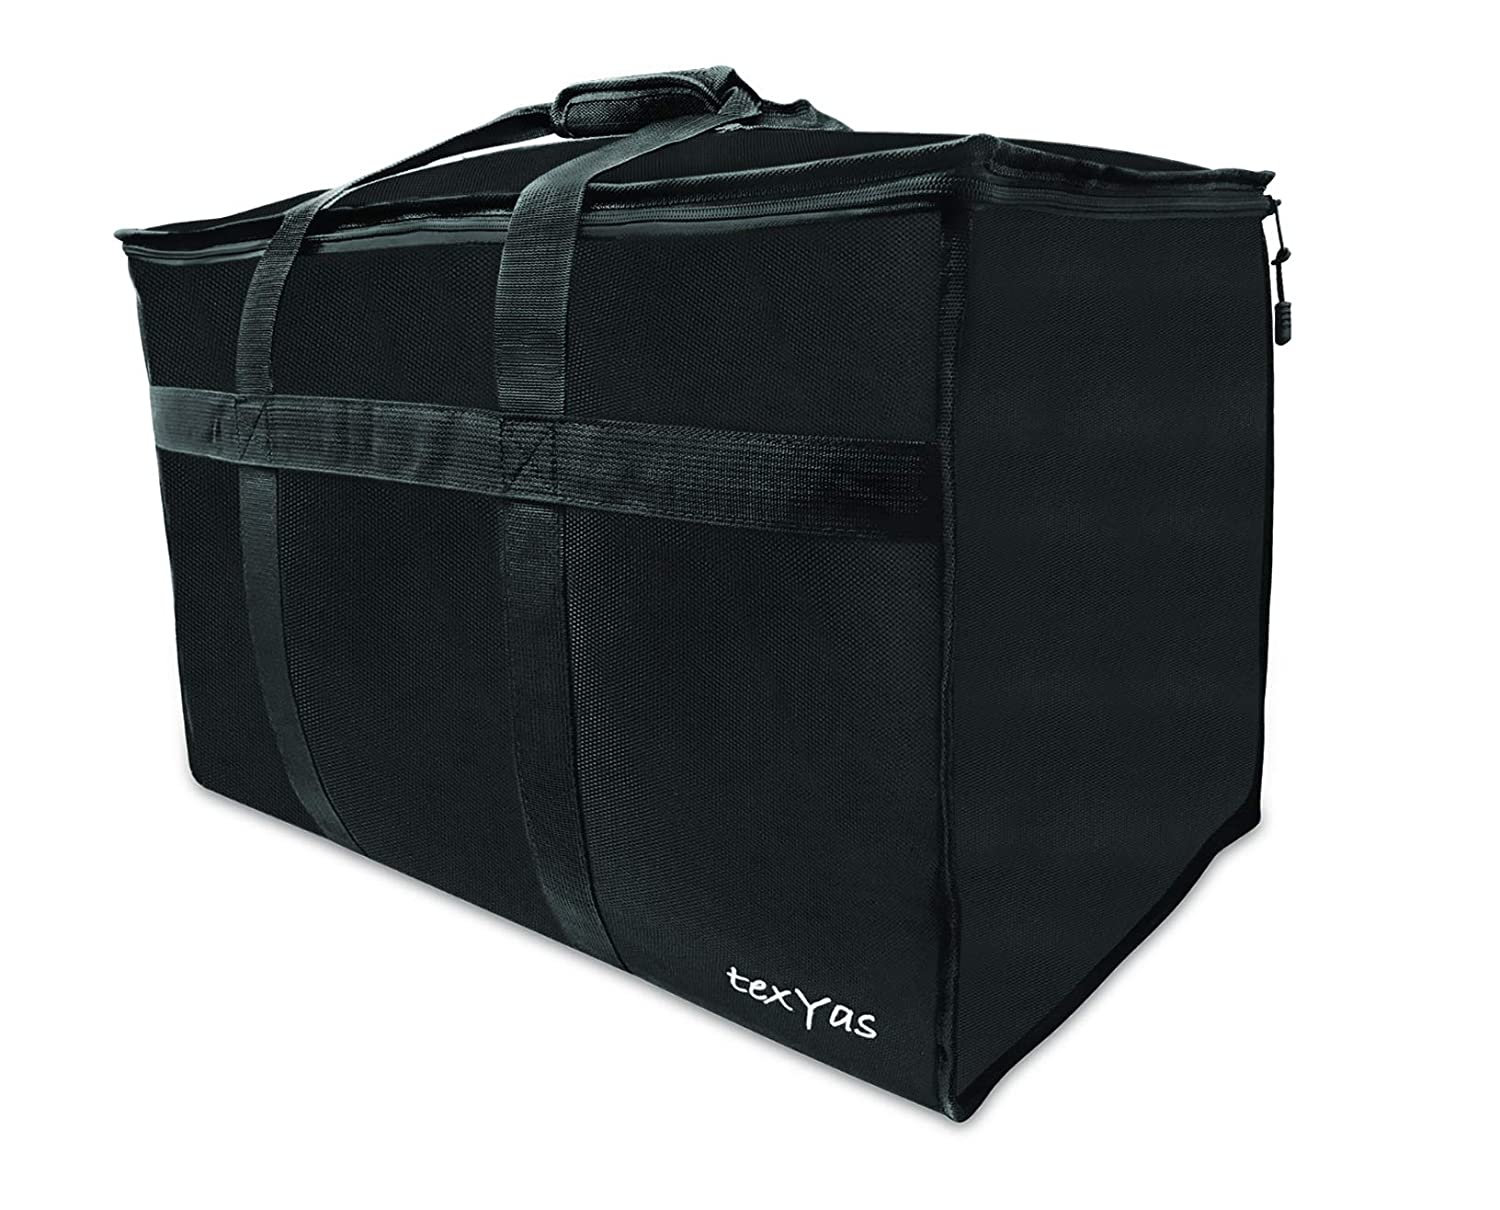 TexYas Extra Large Insulated Thermal Food Delivery Bag Commercial Grade, Ideal for Groceries, Catering, Instacart, Uber Eats, Grubhub, Postmates, Doordash and Restaurant use Washable, Leakproof